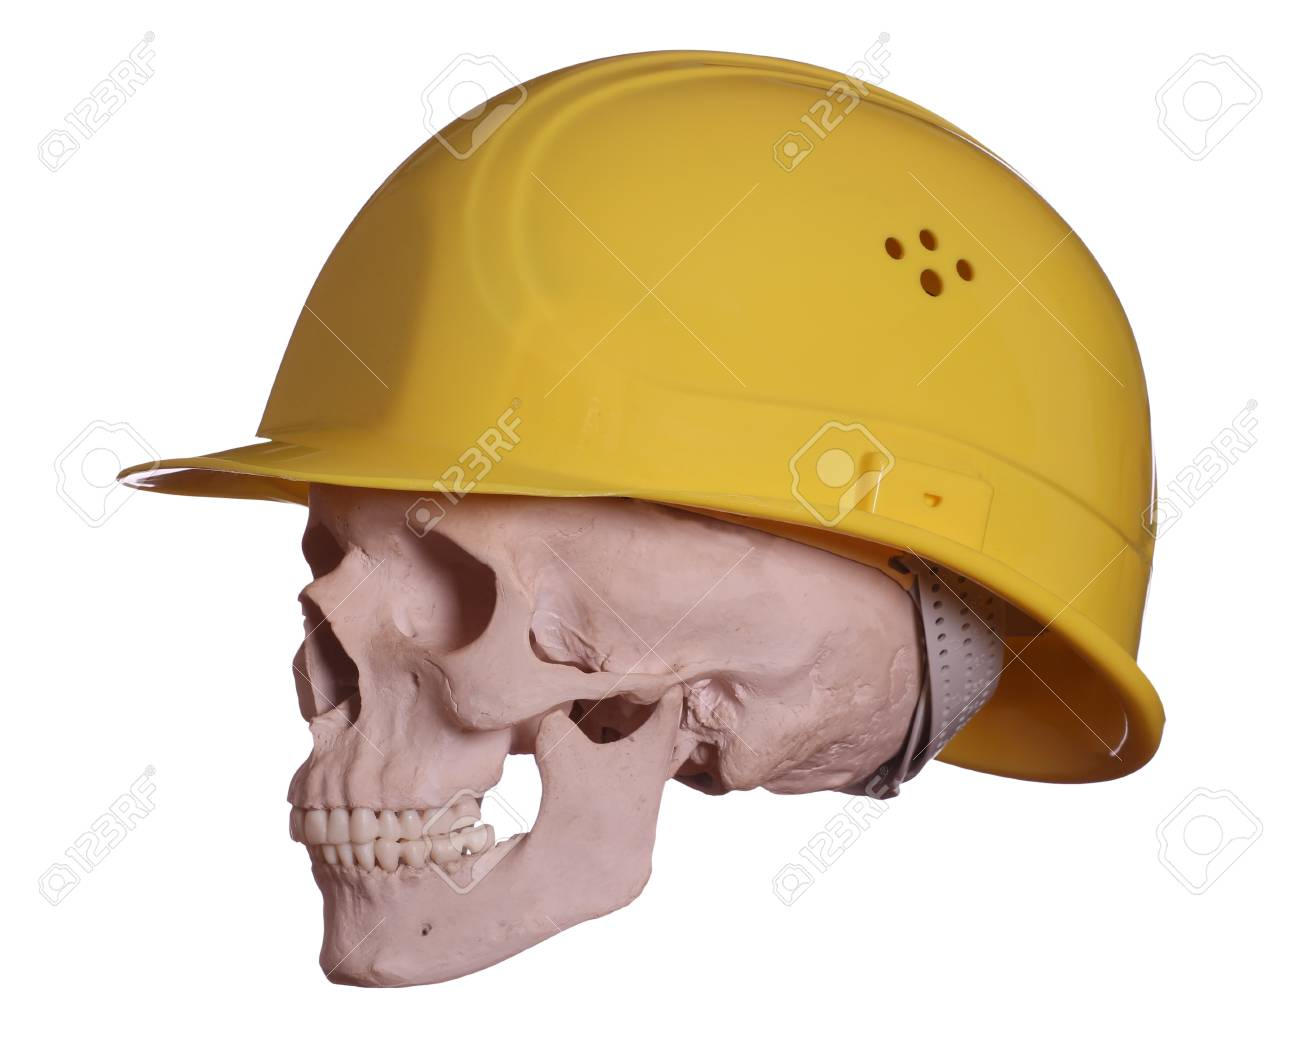 skull with yellow helmet Stock Photo - 17917619